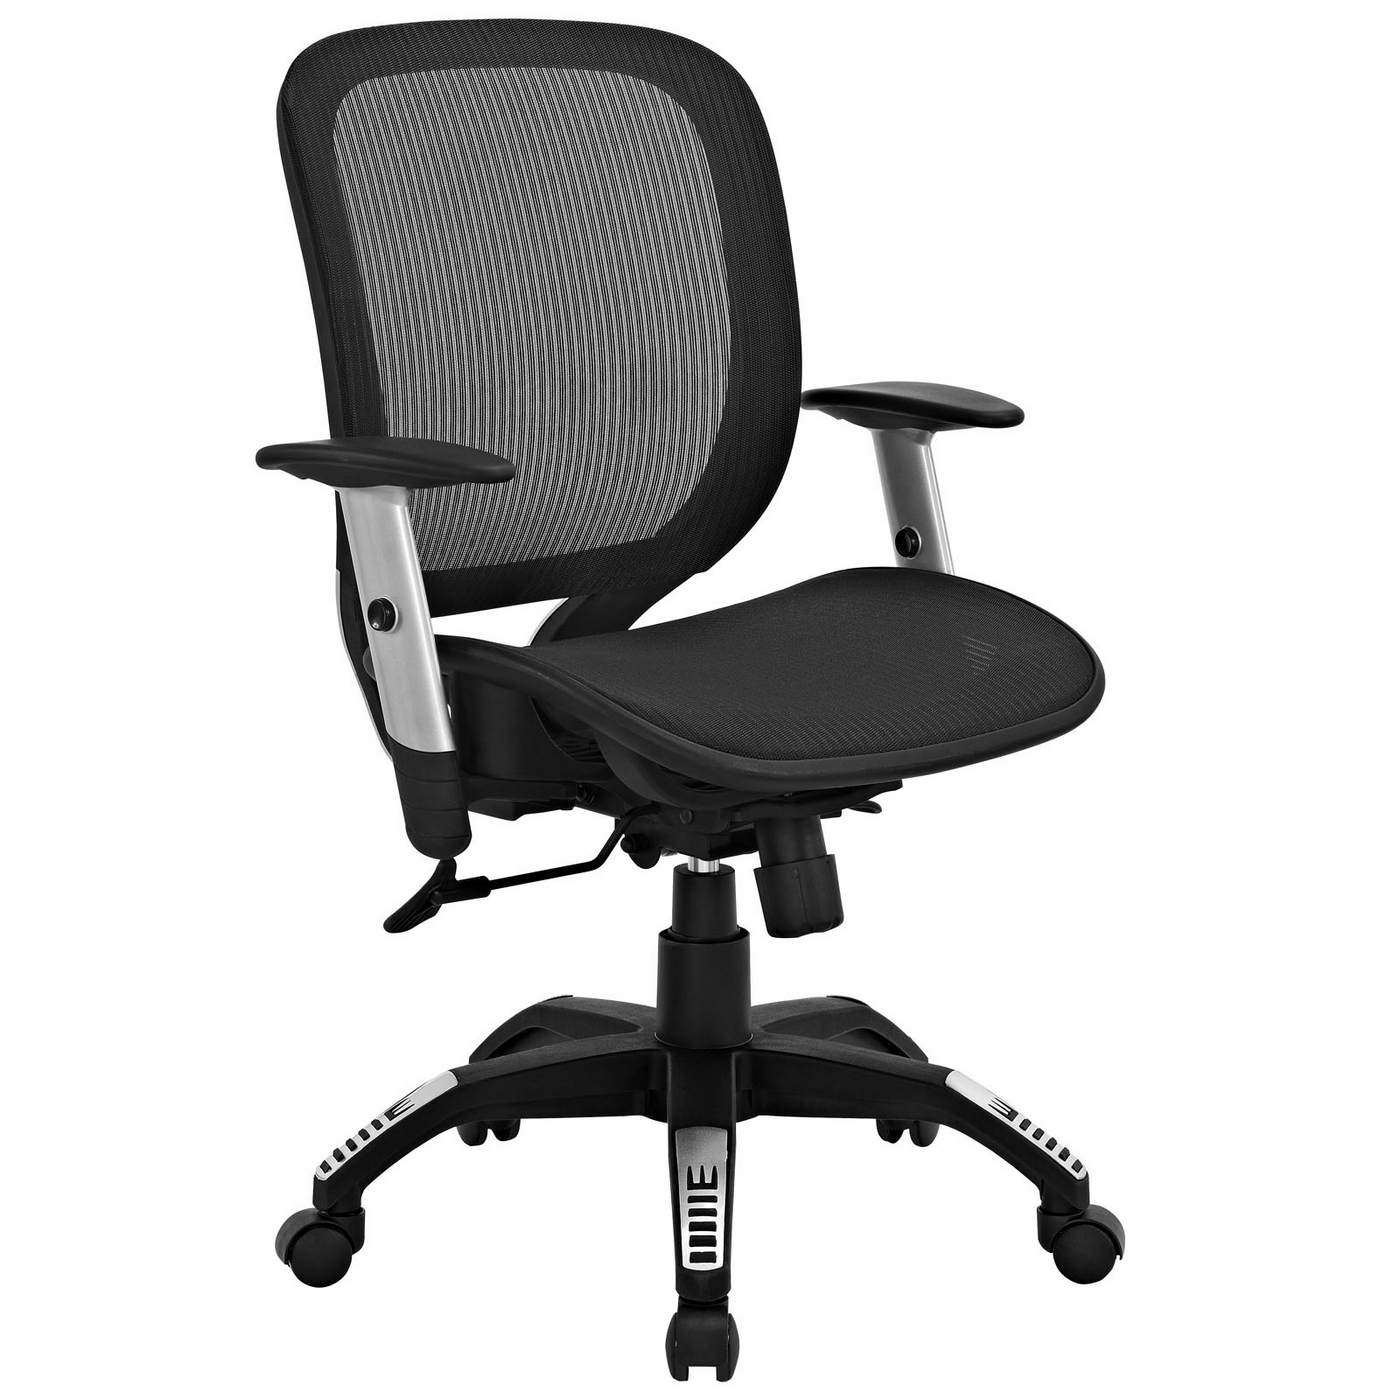 Arillus Contemporary All Mesh Office Chair w/ Adjustable ...